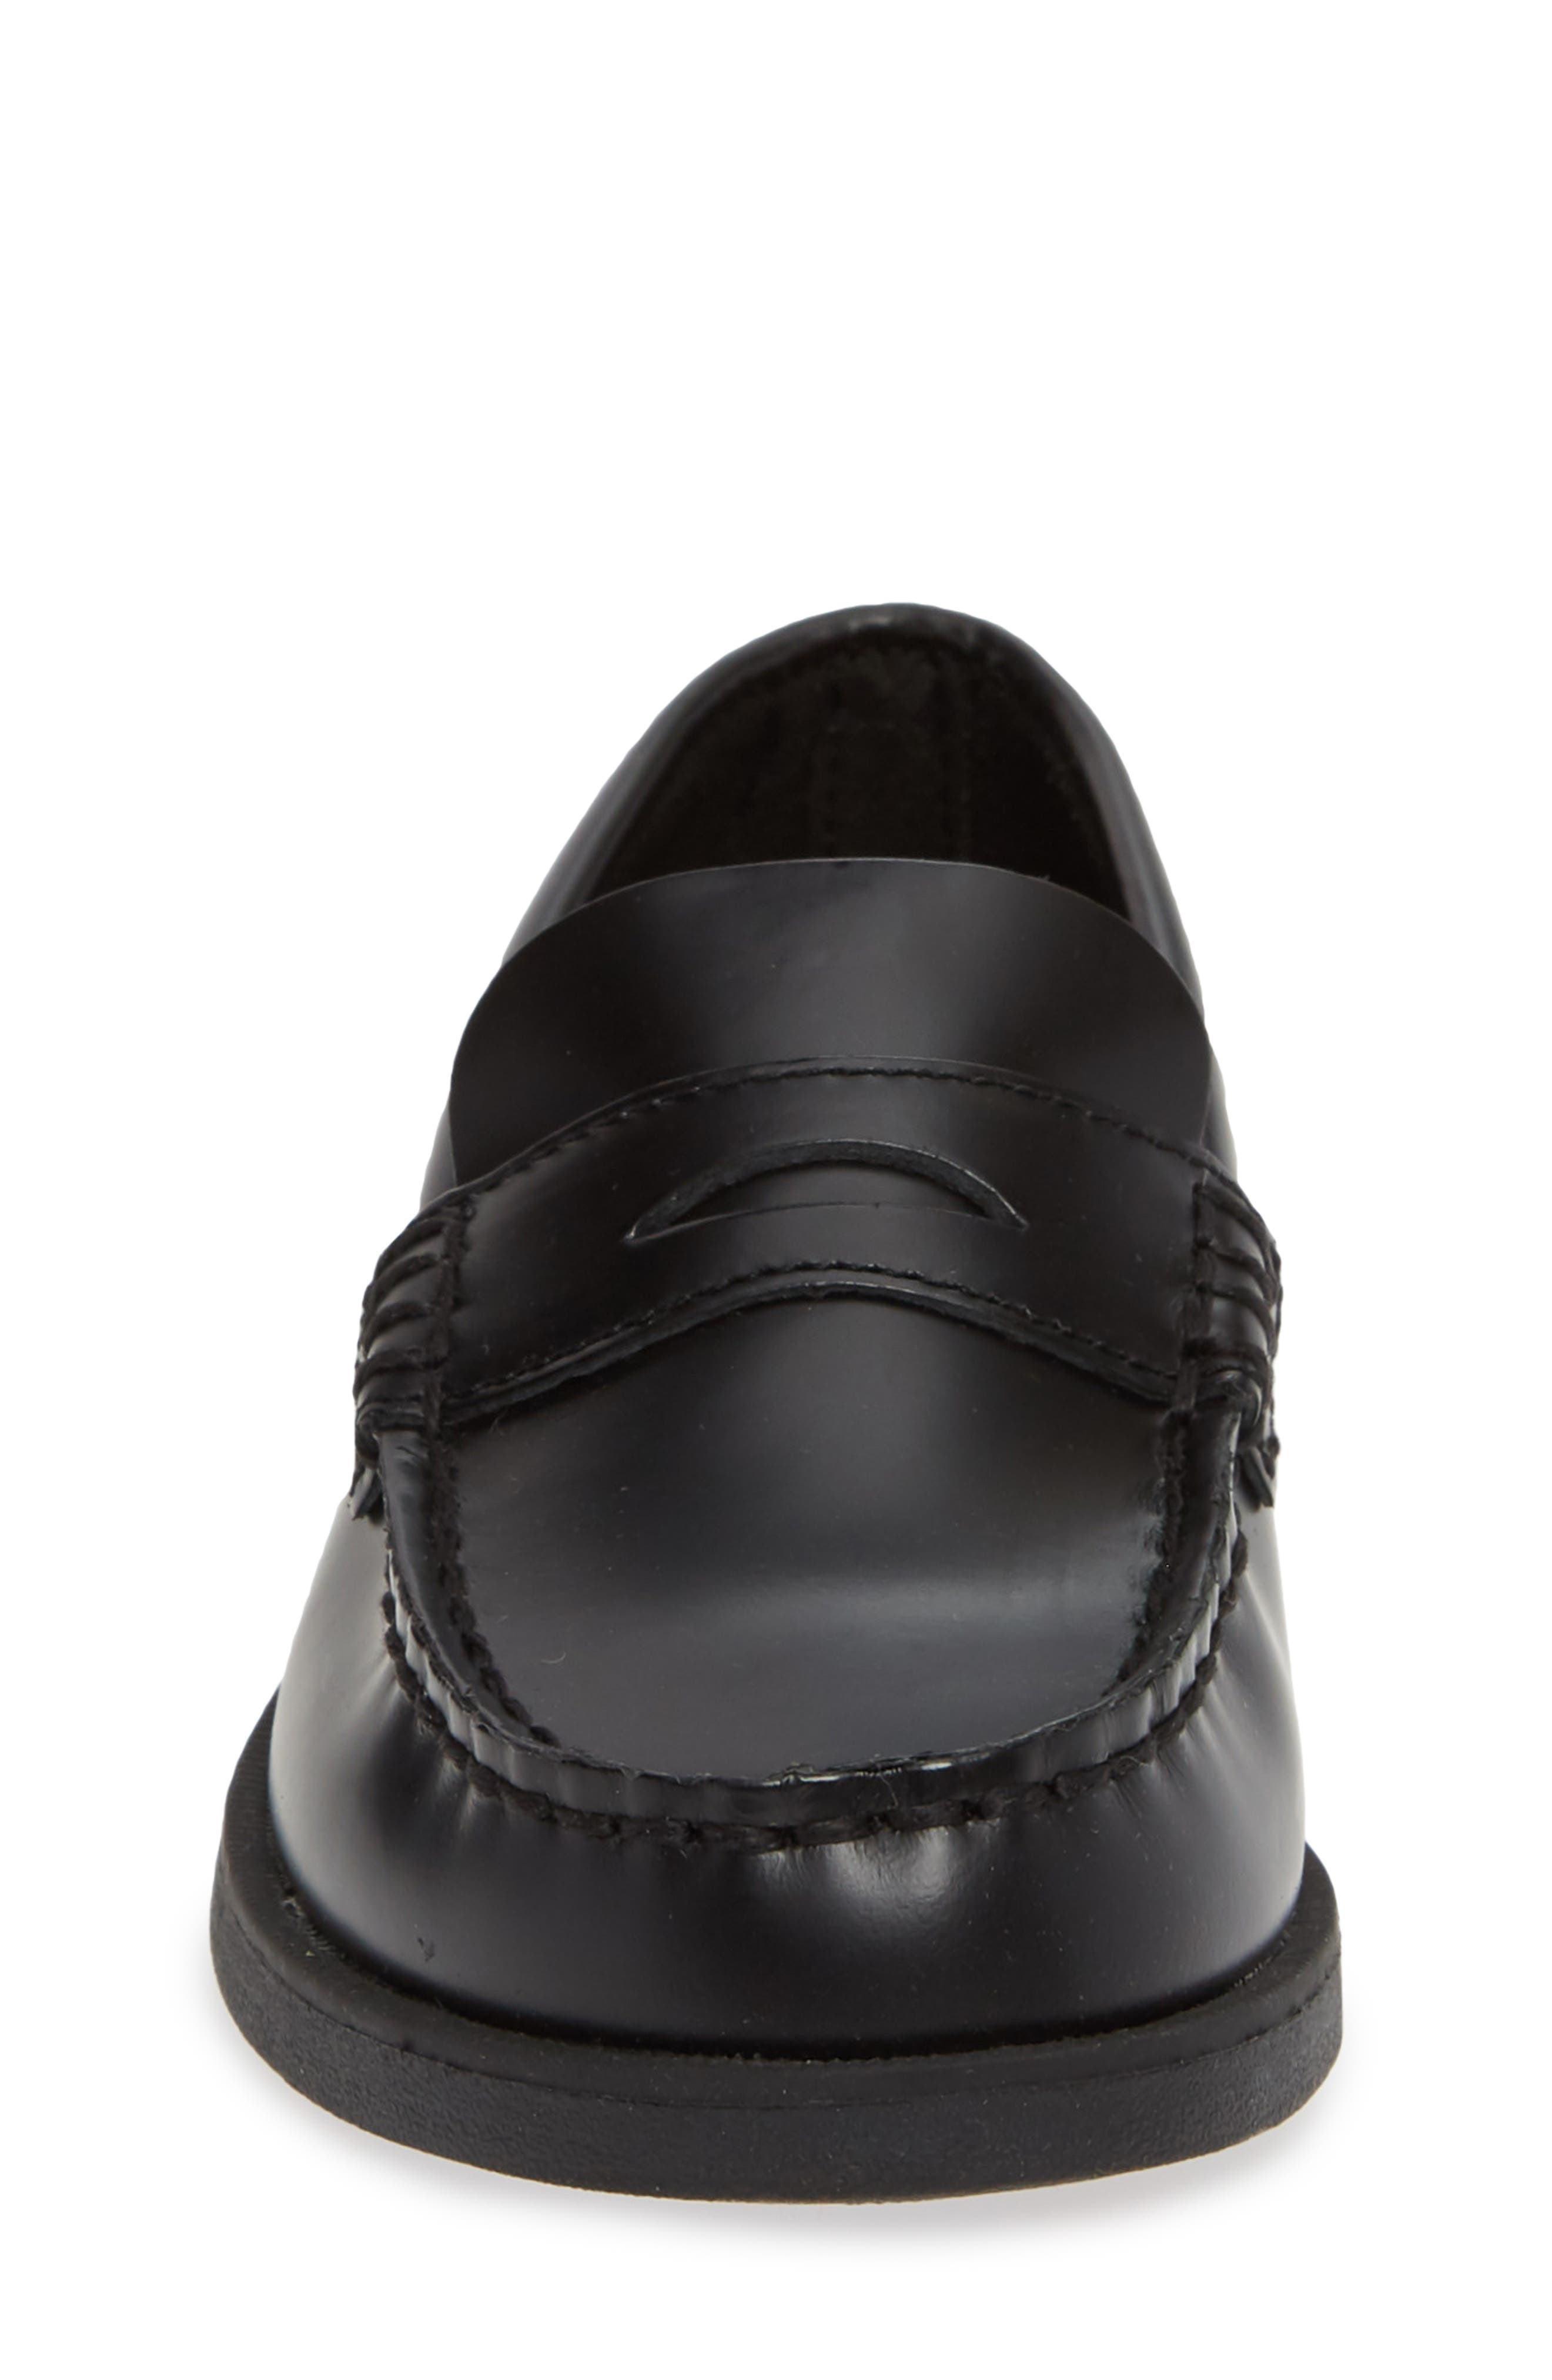 SPERRY KIDS,                             'Colton' Loafer,                             Alternate thumbnail 5, color,                             BLACK LEATHER